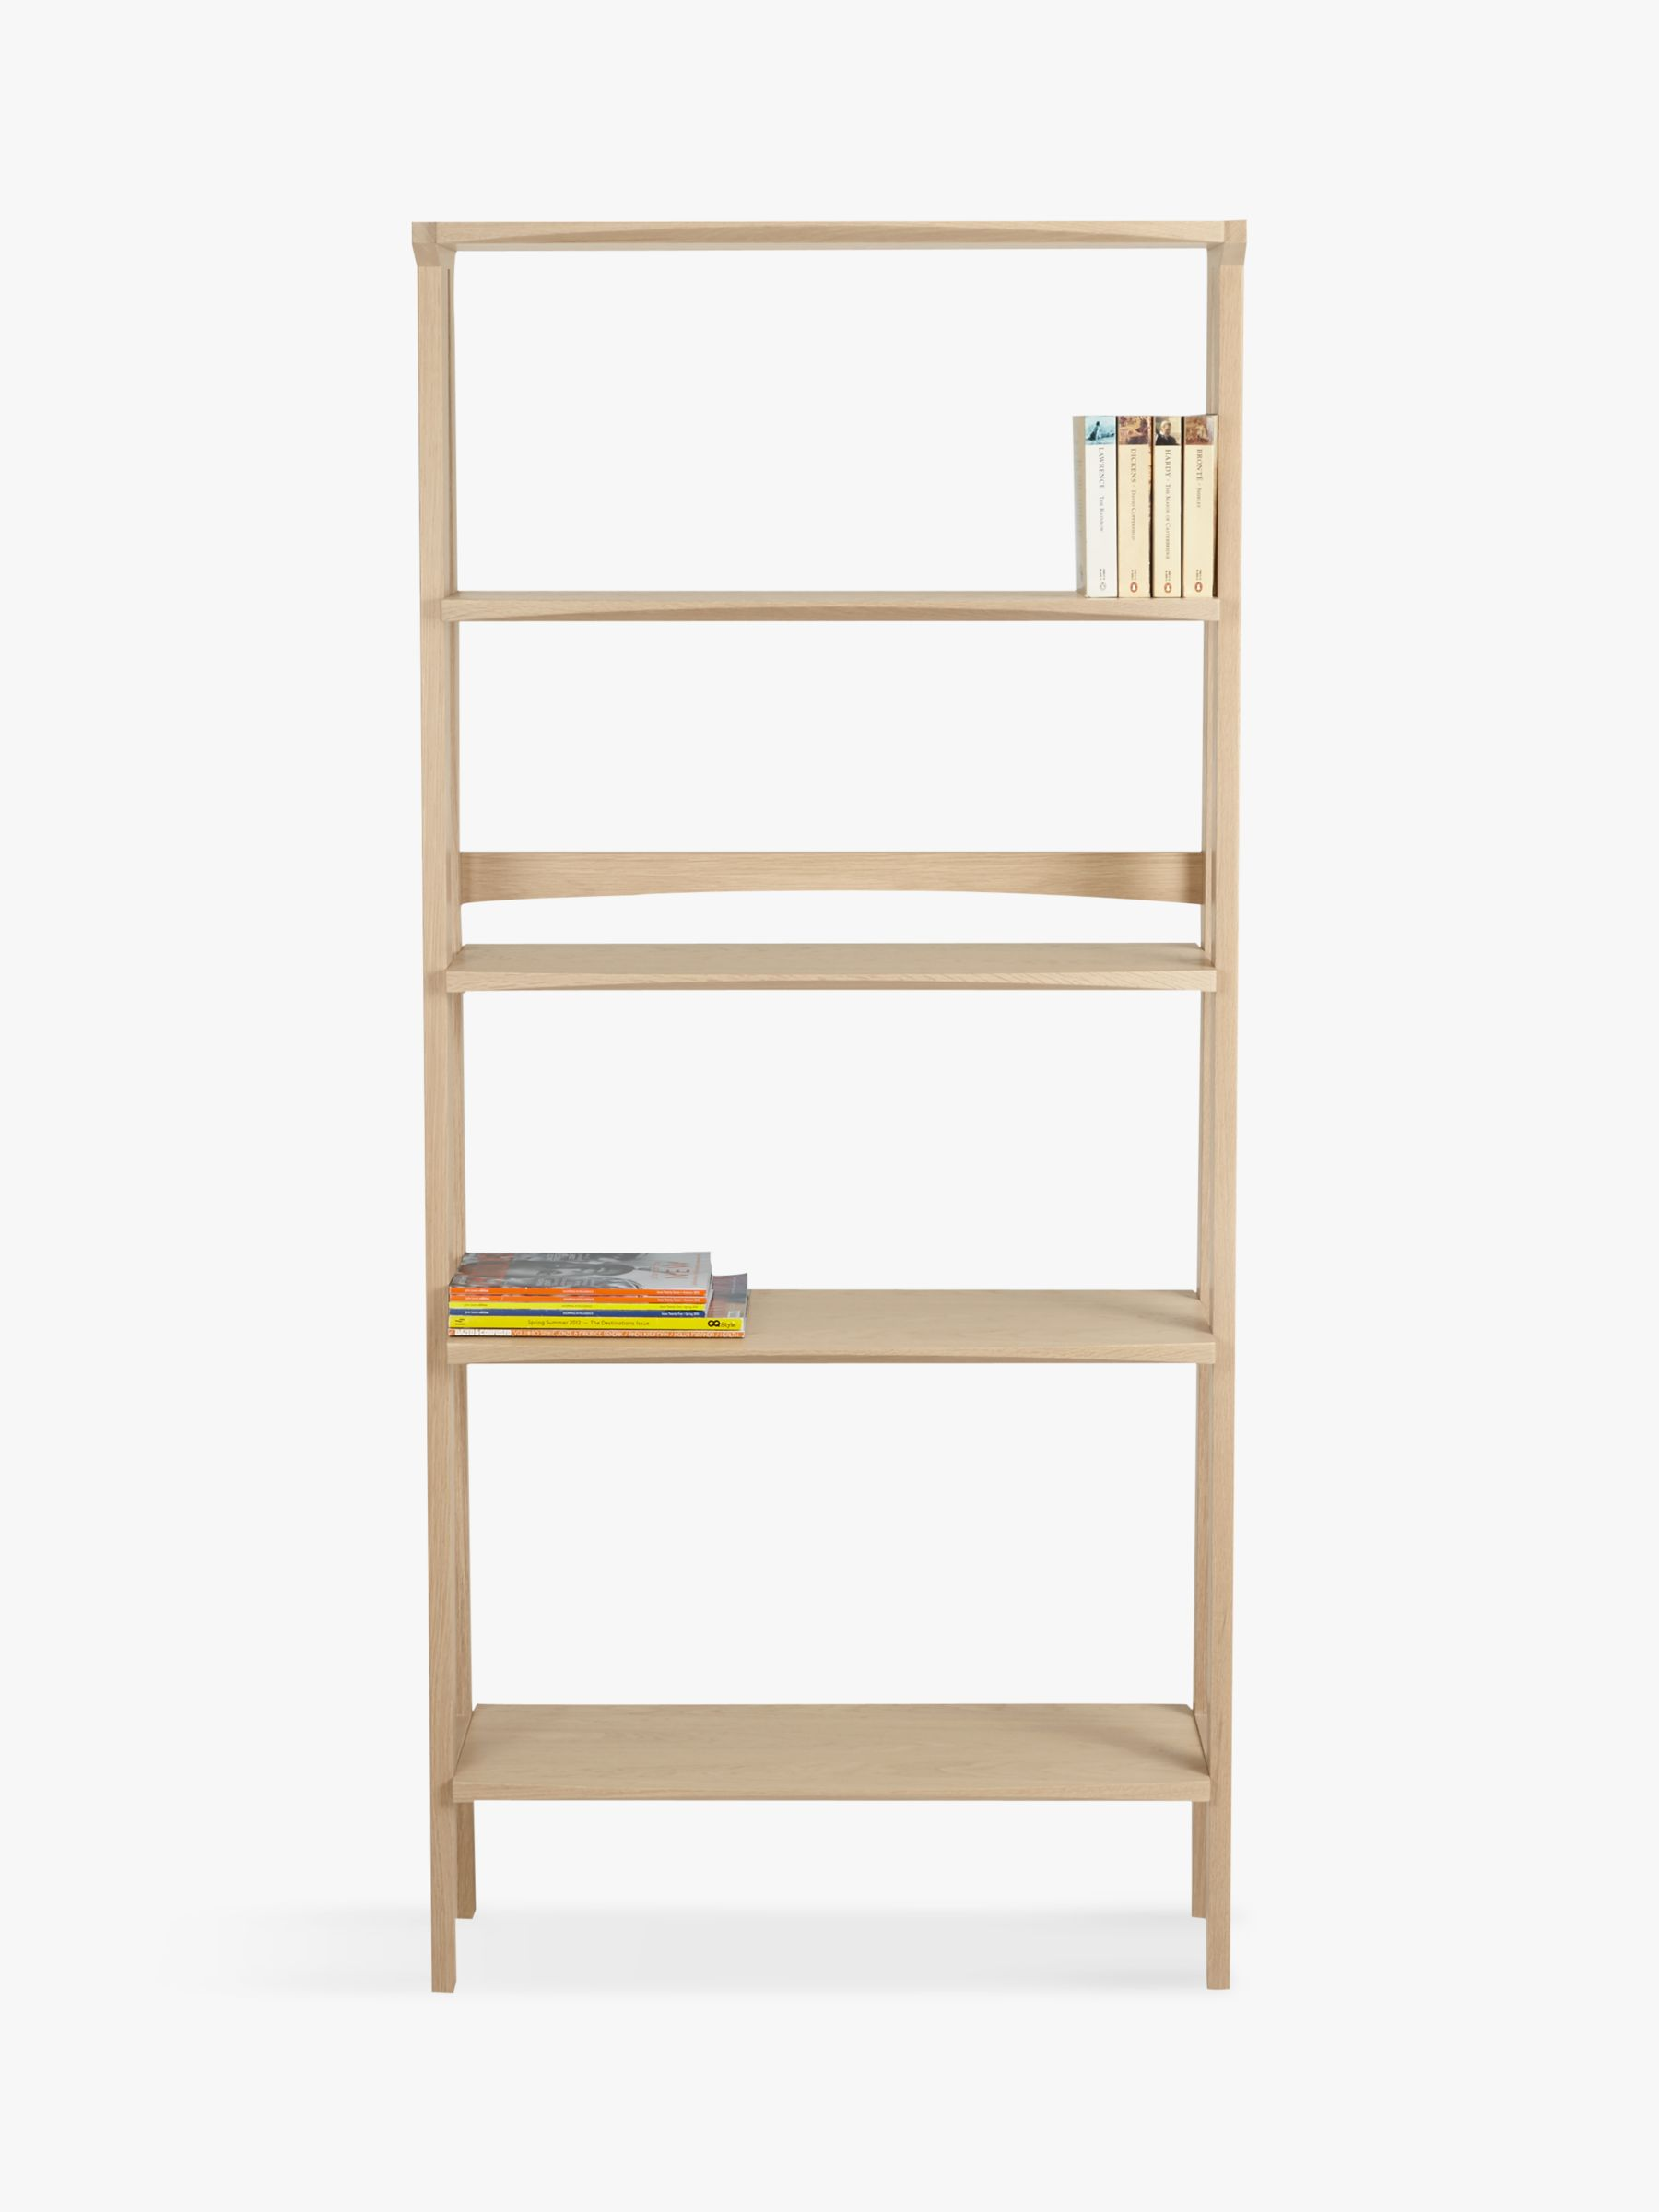 Design Display Bookshelf buy john lewis duhrer bookshelf display unit online at johnlewis com